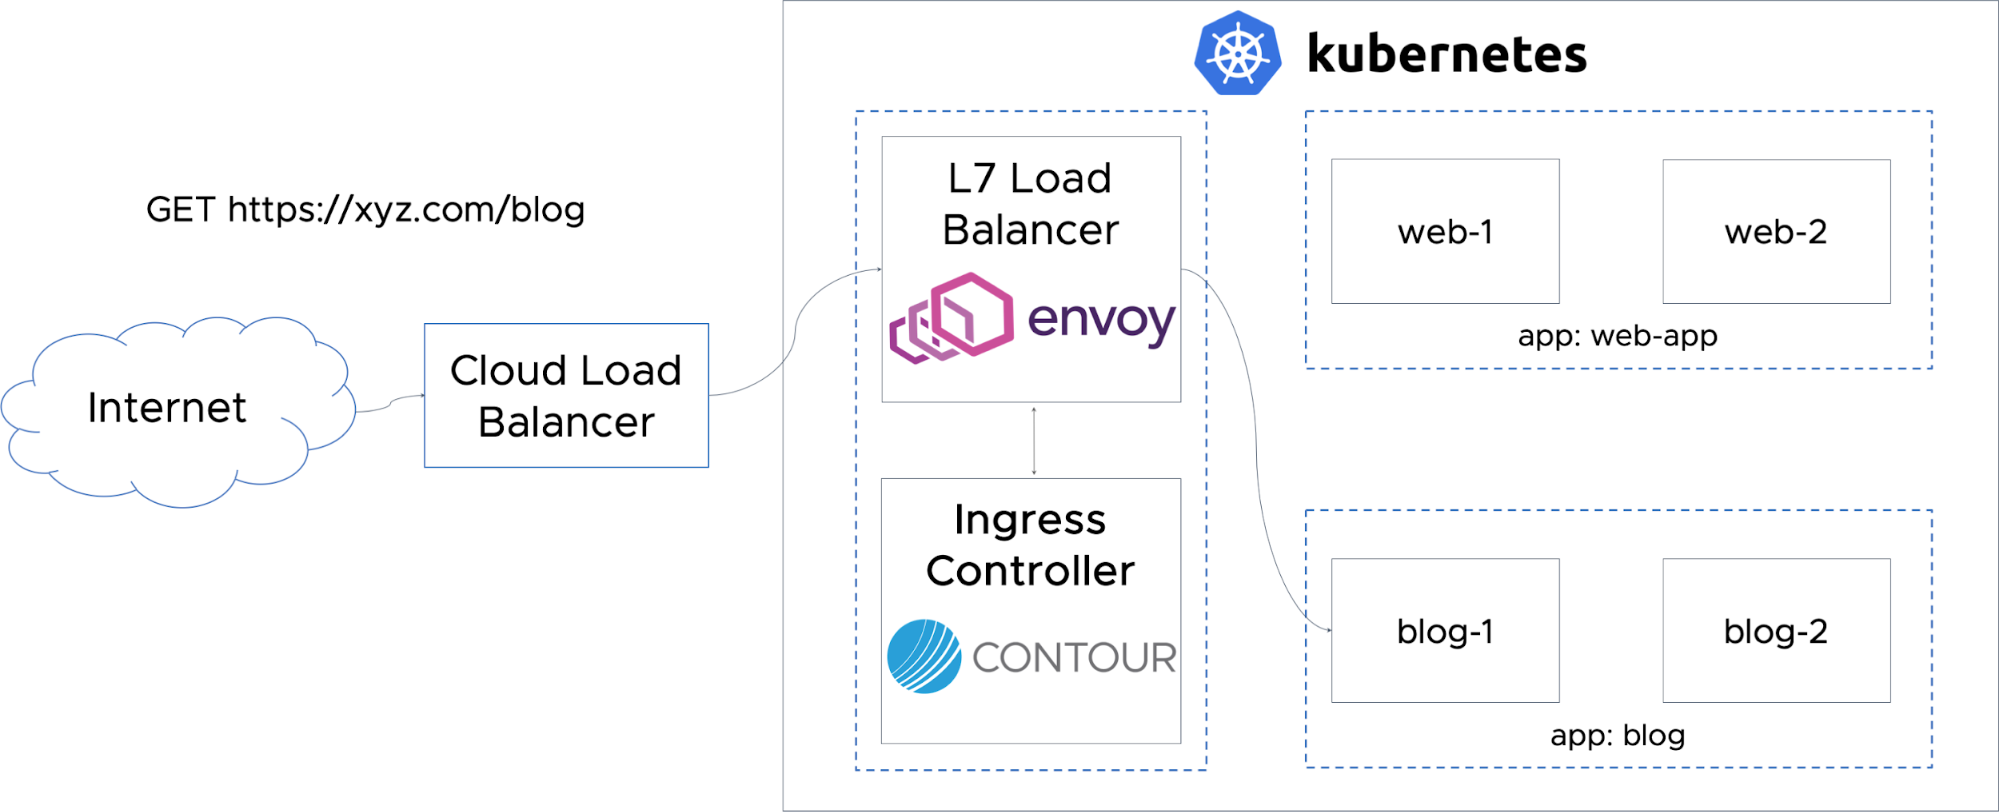 Routing Traffic to Applications in Kubernetes with Contour